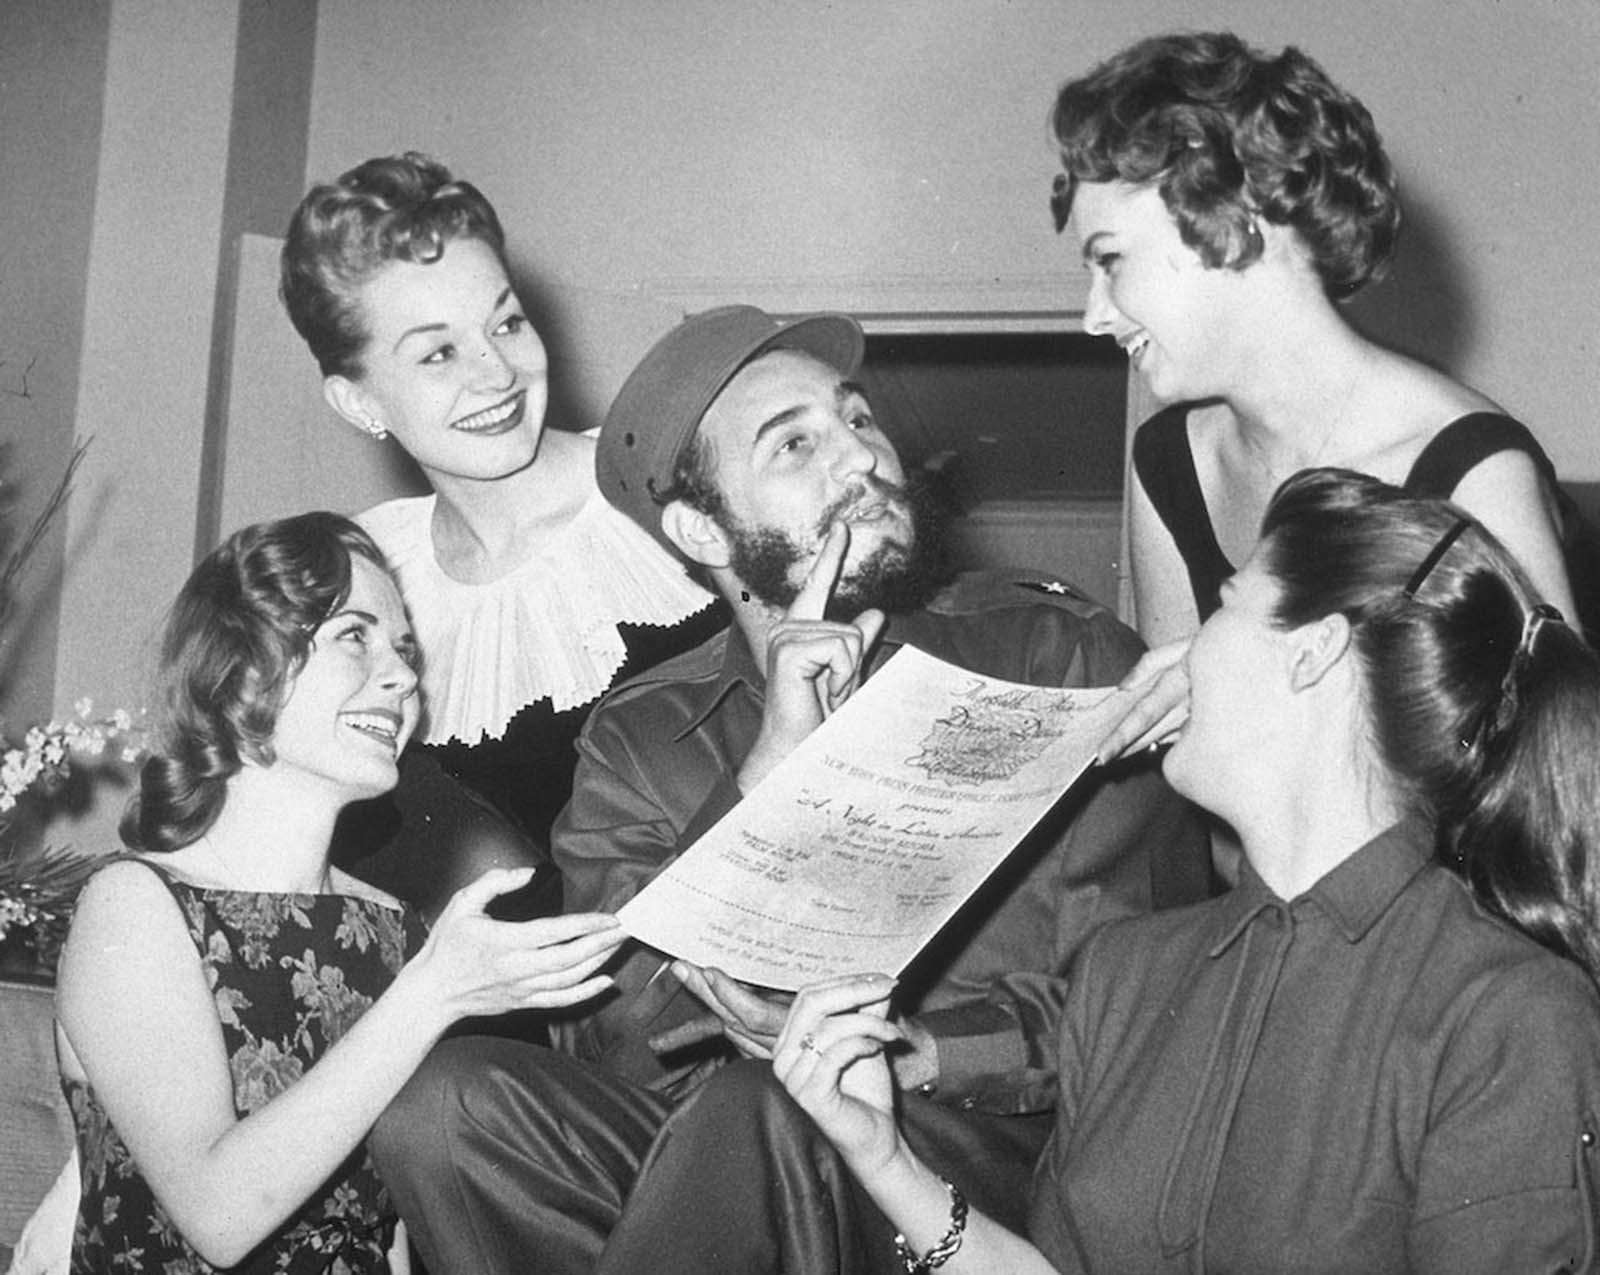 Castro is presented with an invitation to the New York Press Photographer's Ball.